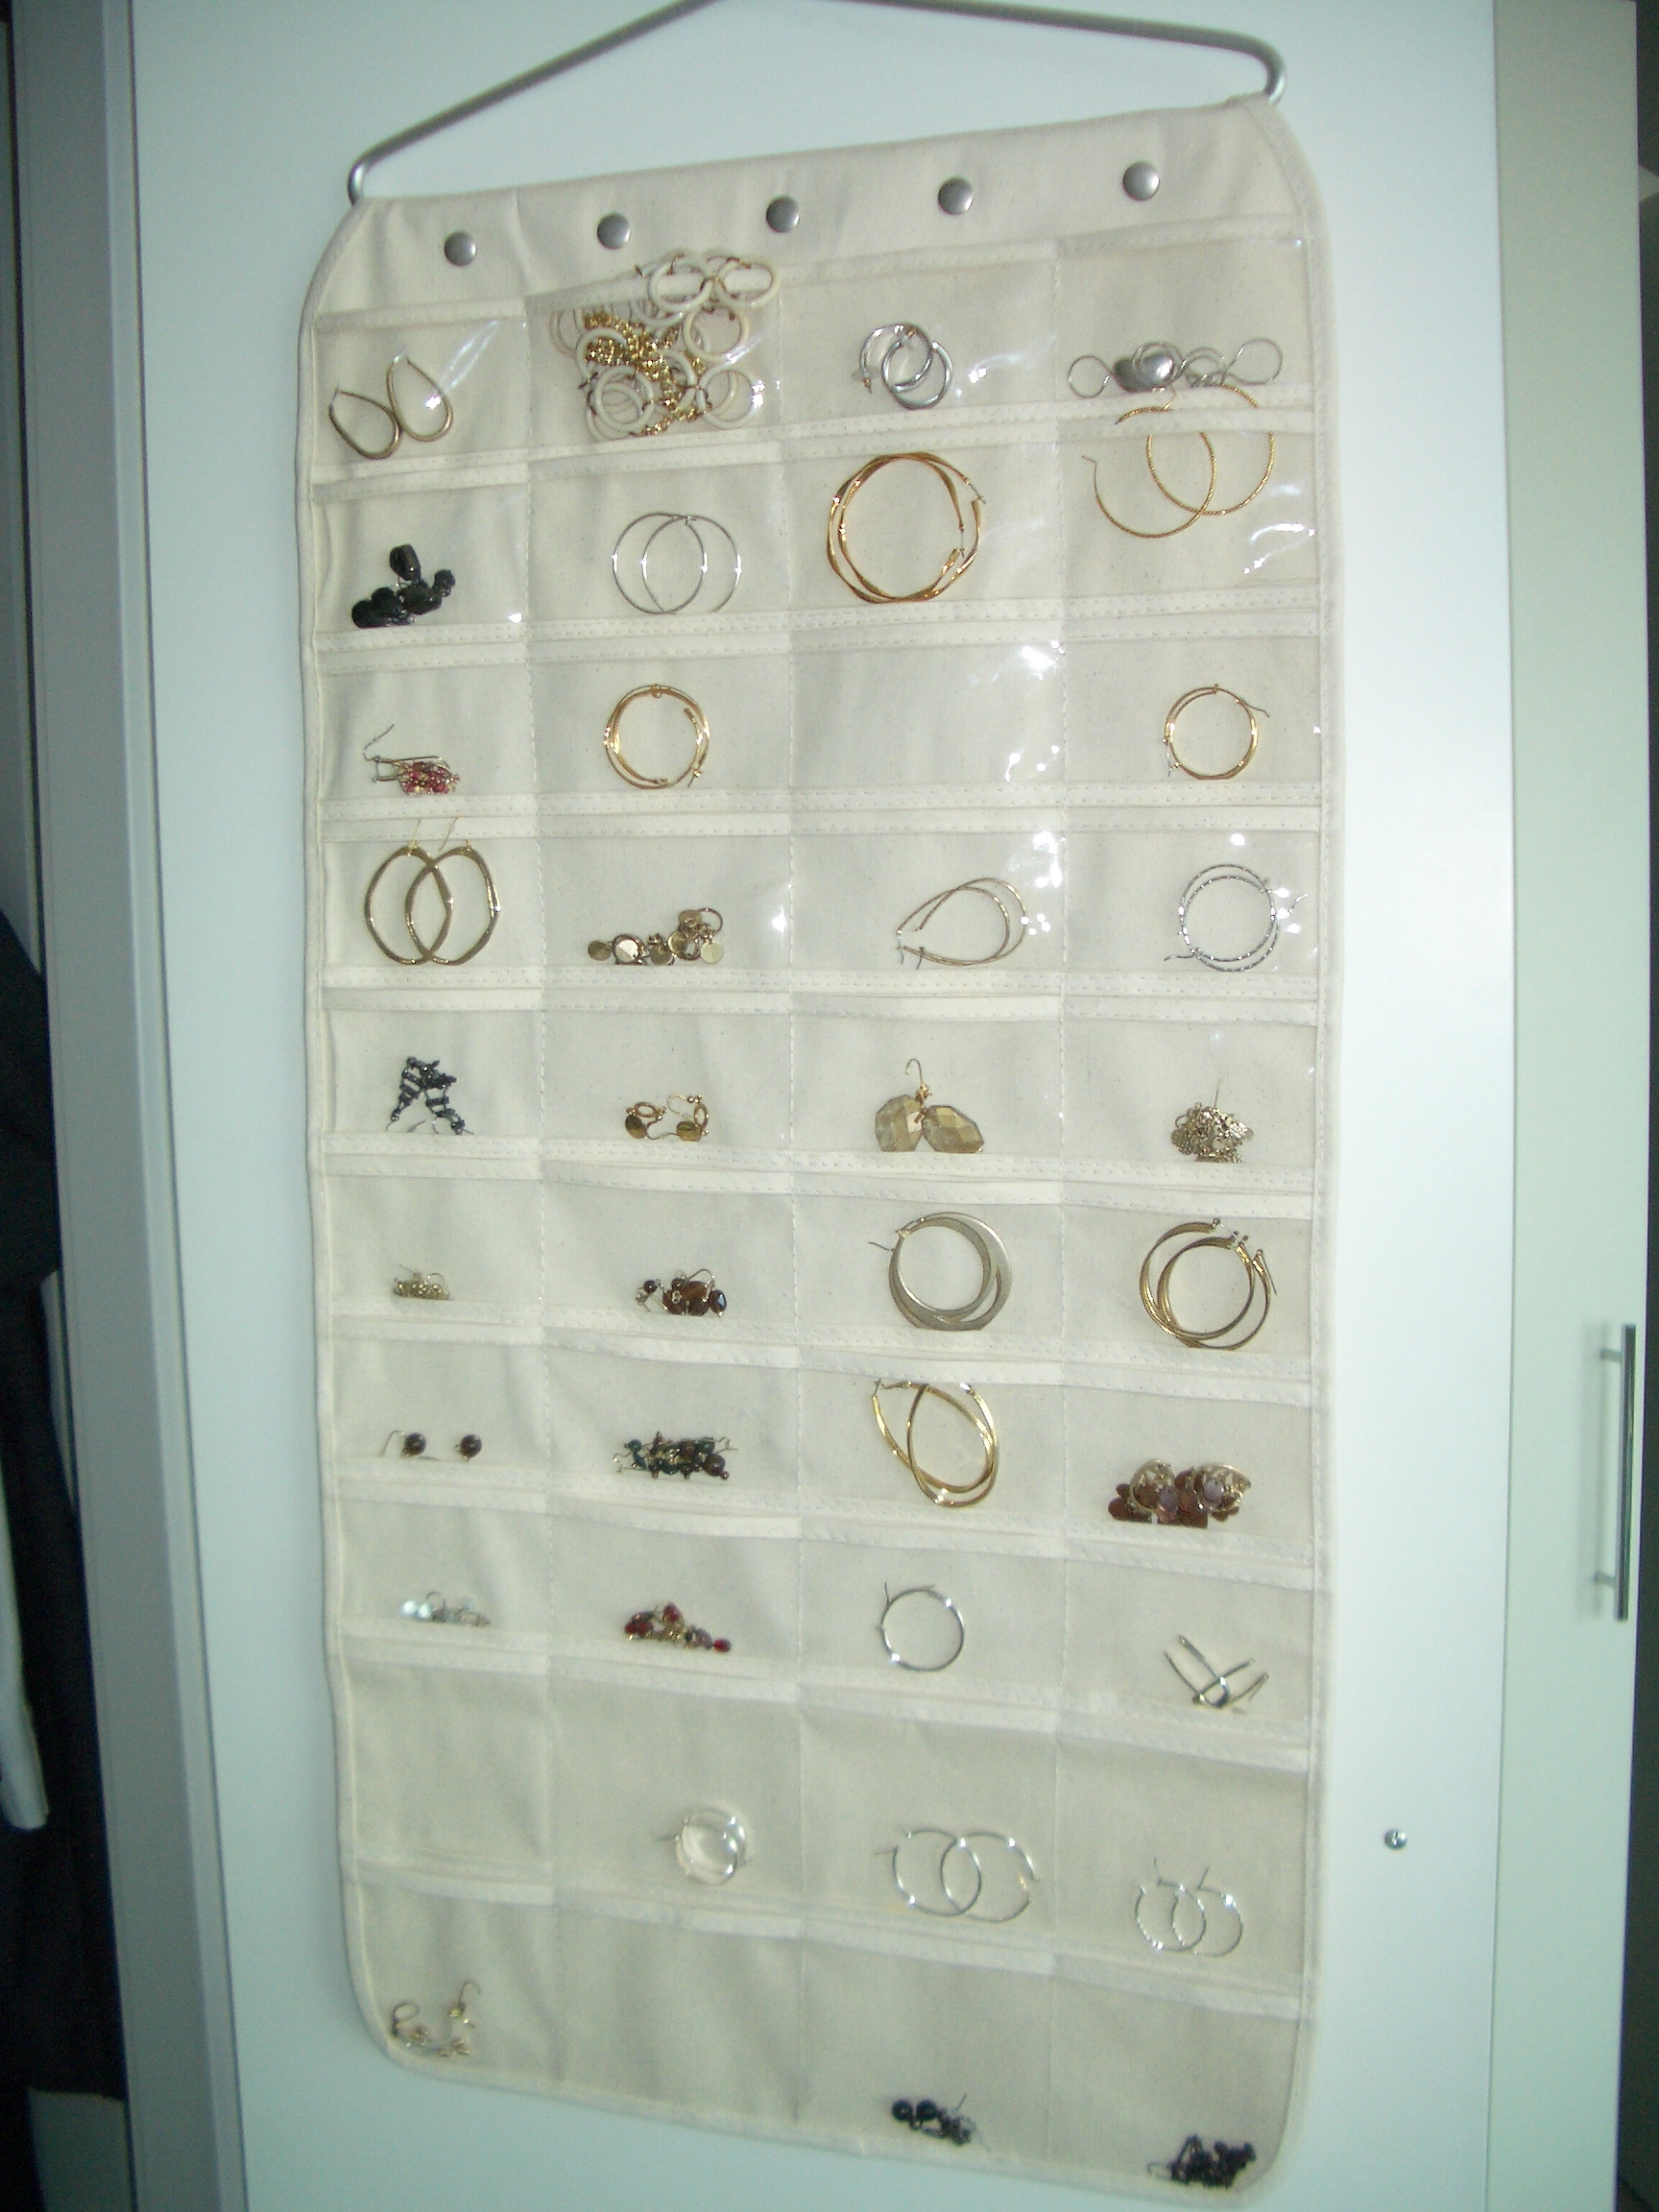 Jewelry Organizing Ideas What Are Yours Wordpress